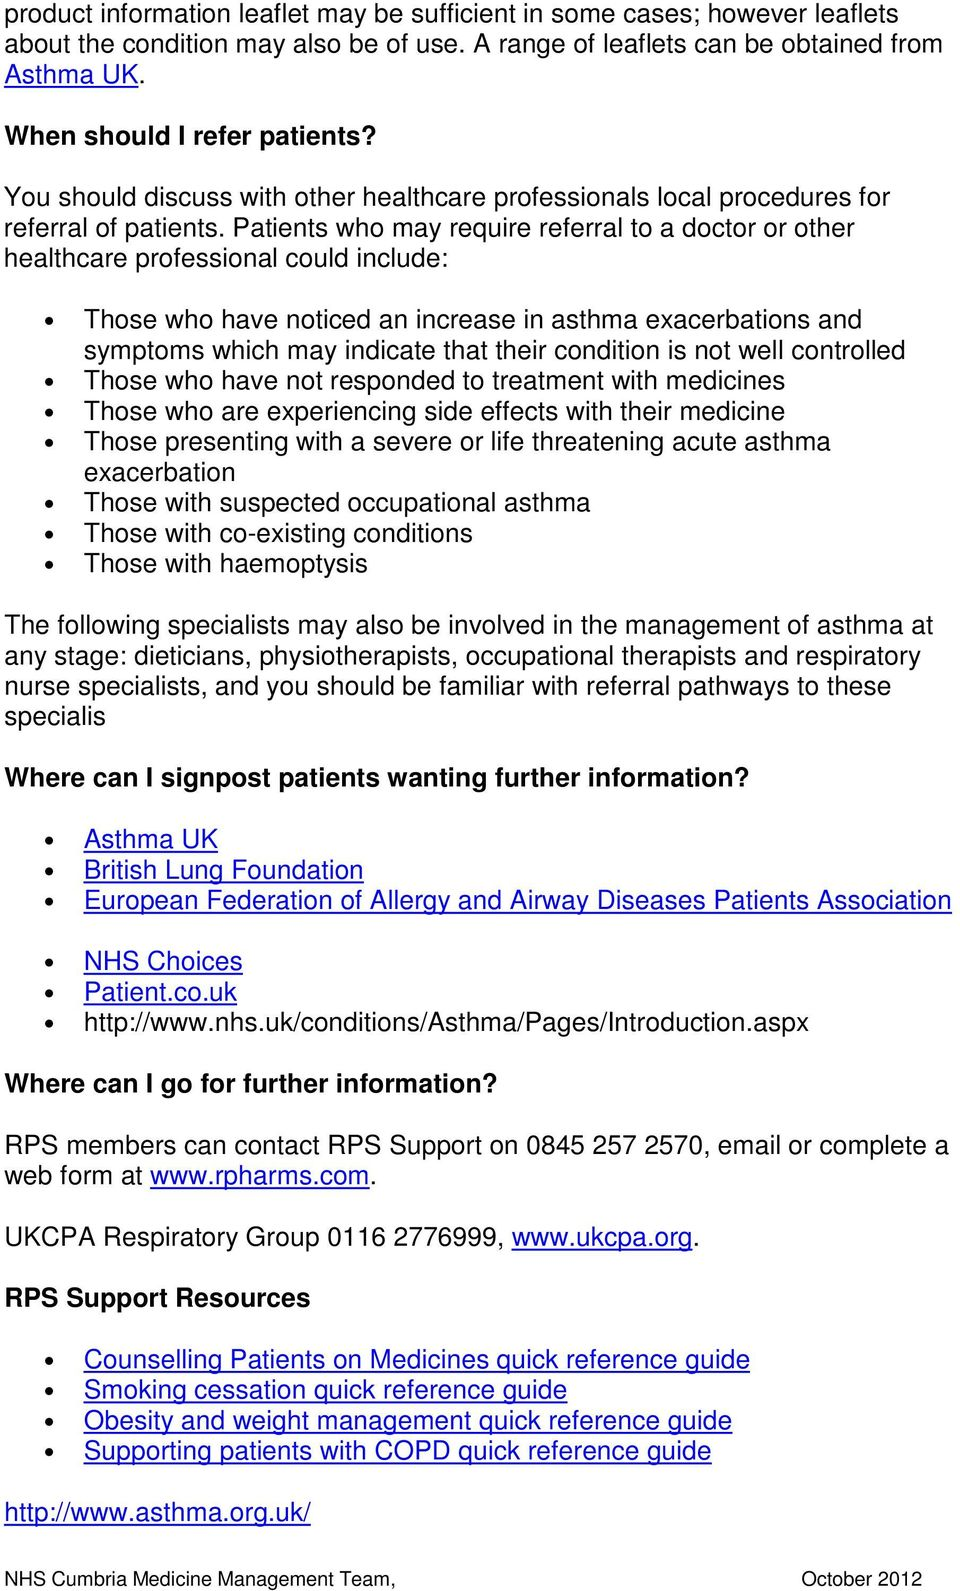 Patients who may require referral to a doctor or other healthcare professional could include: Those who have noticed an increase in asthma exacerbations and symptoms which may indicate that their